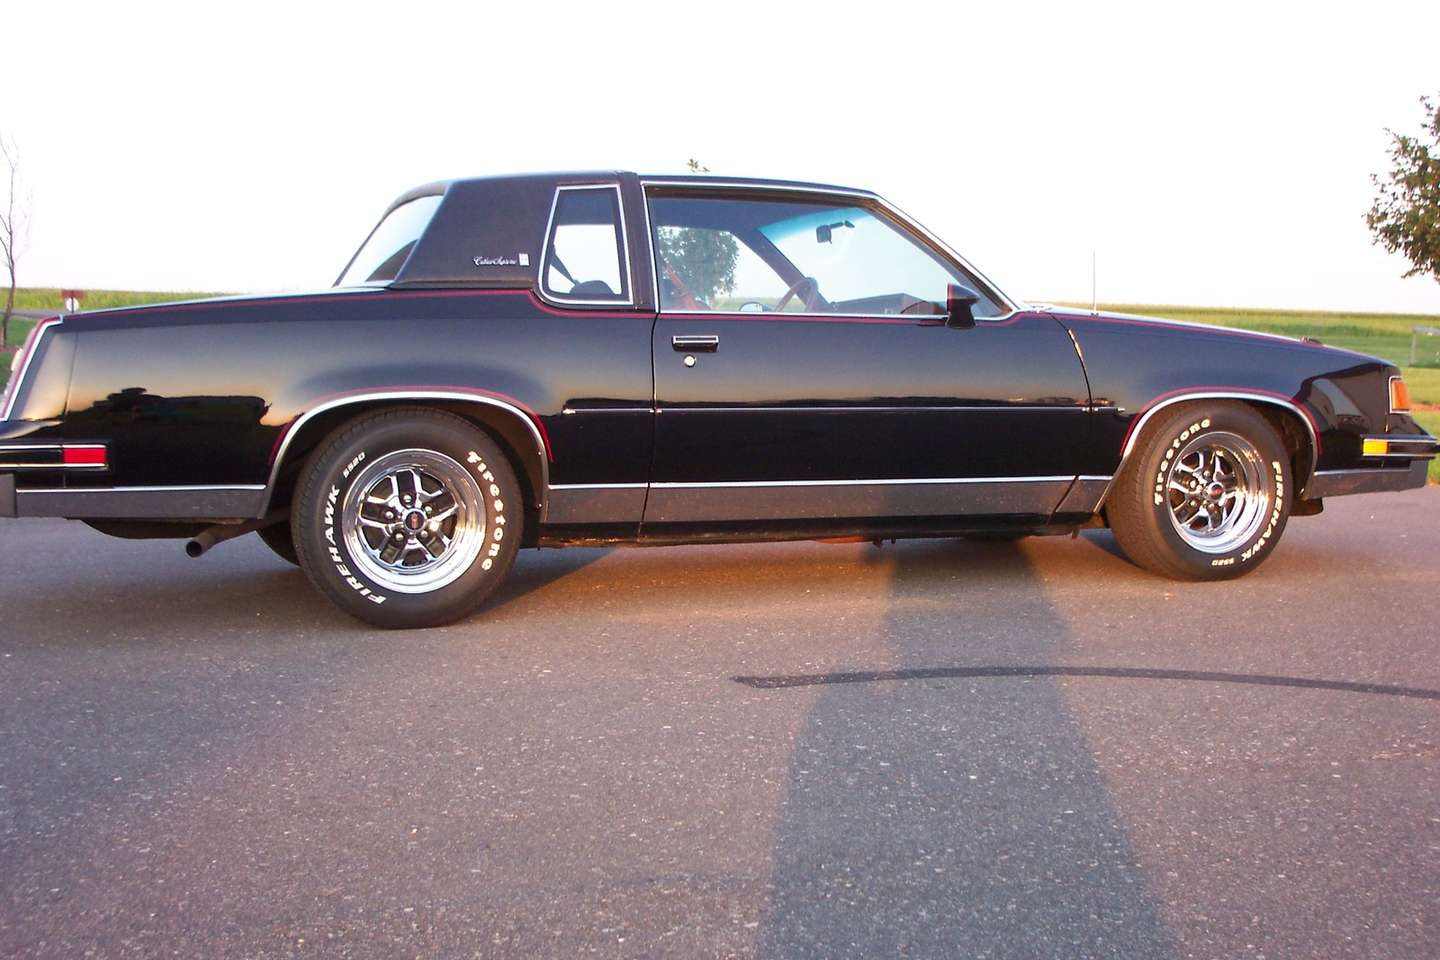 Oldsmobile Cutlass Supreme #7505891